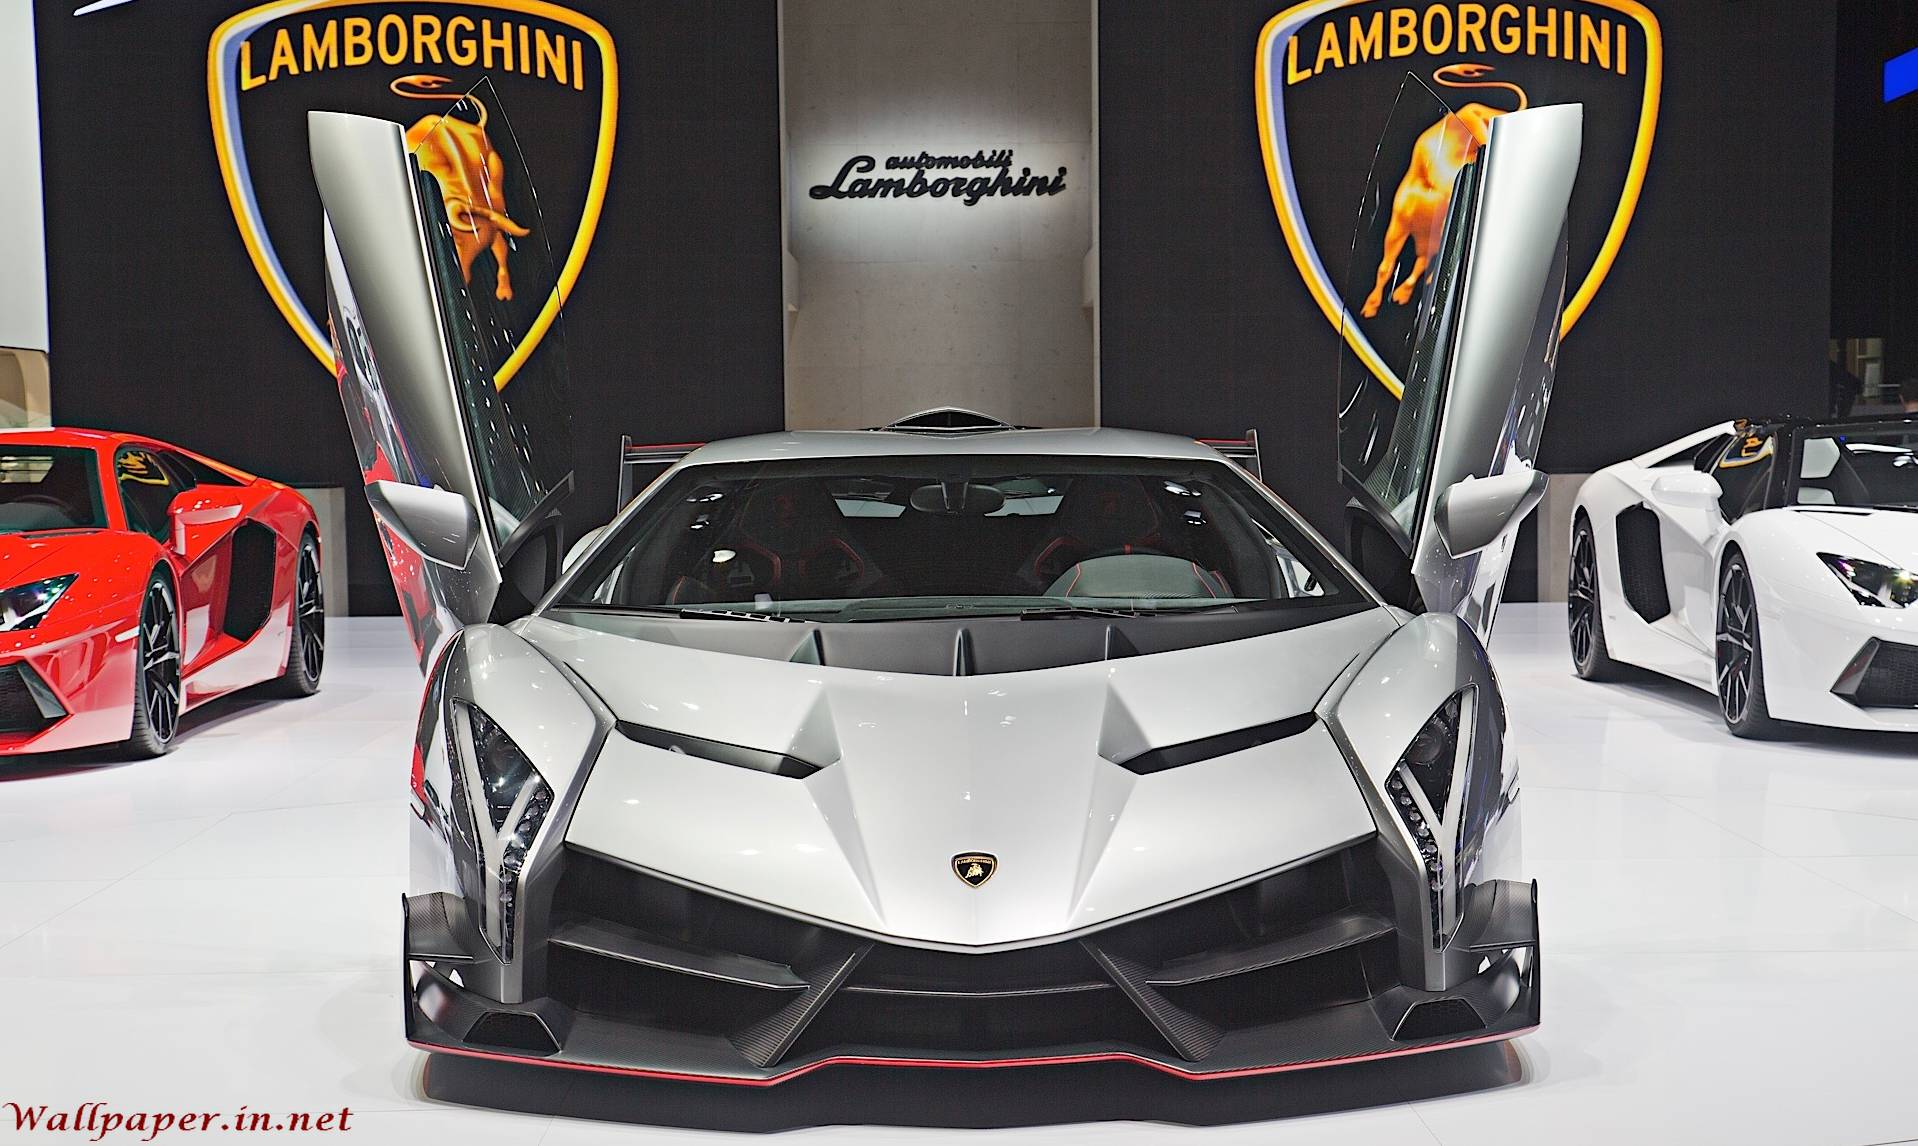 Lamborghini HD wallpaper for download